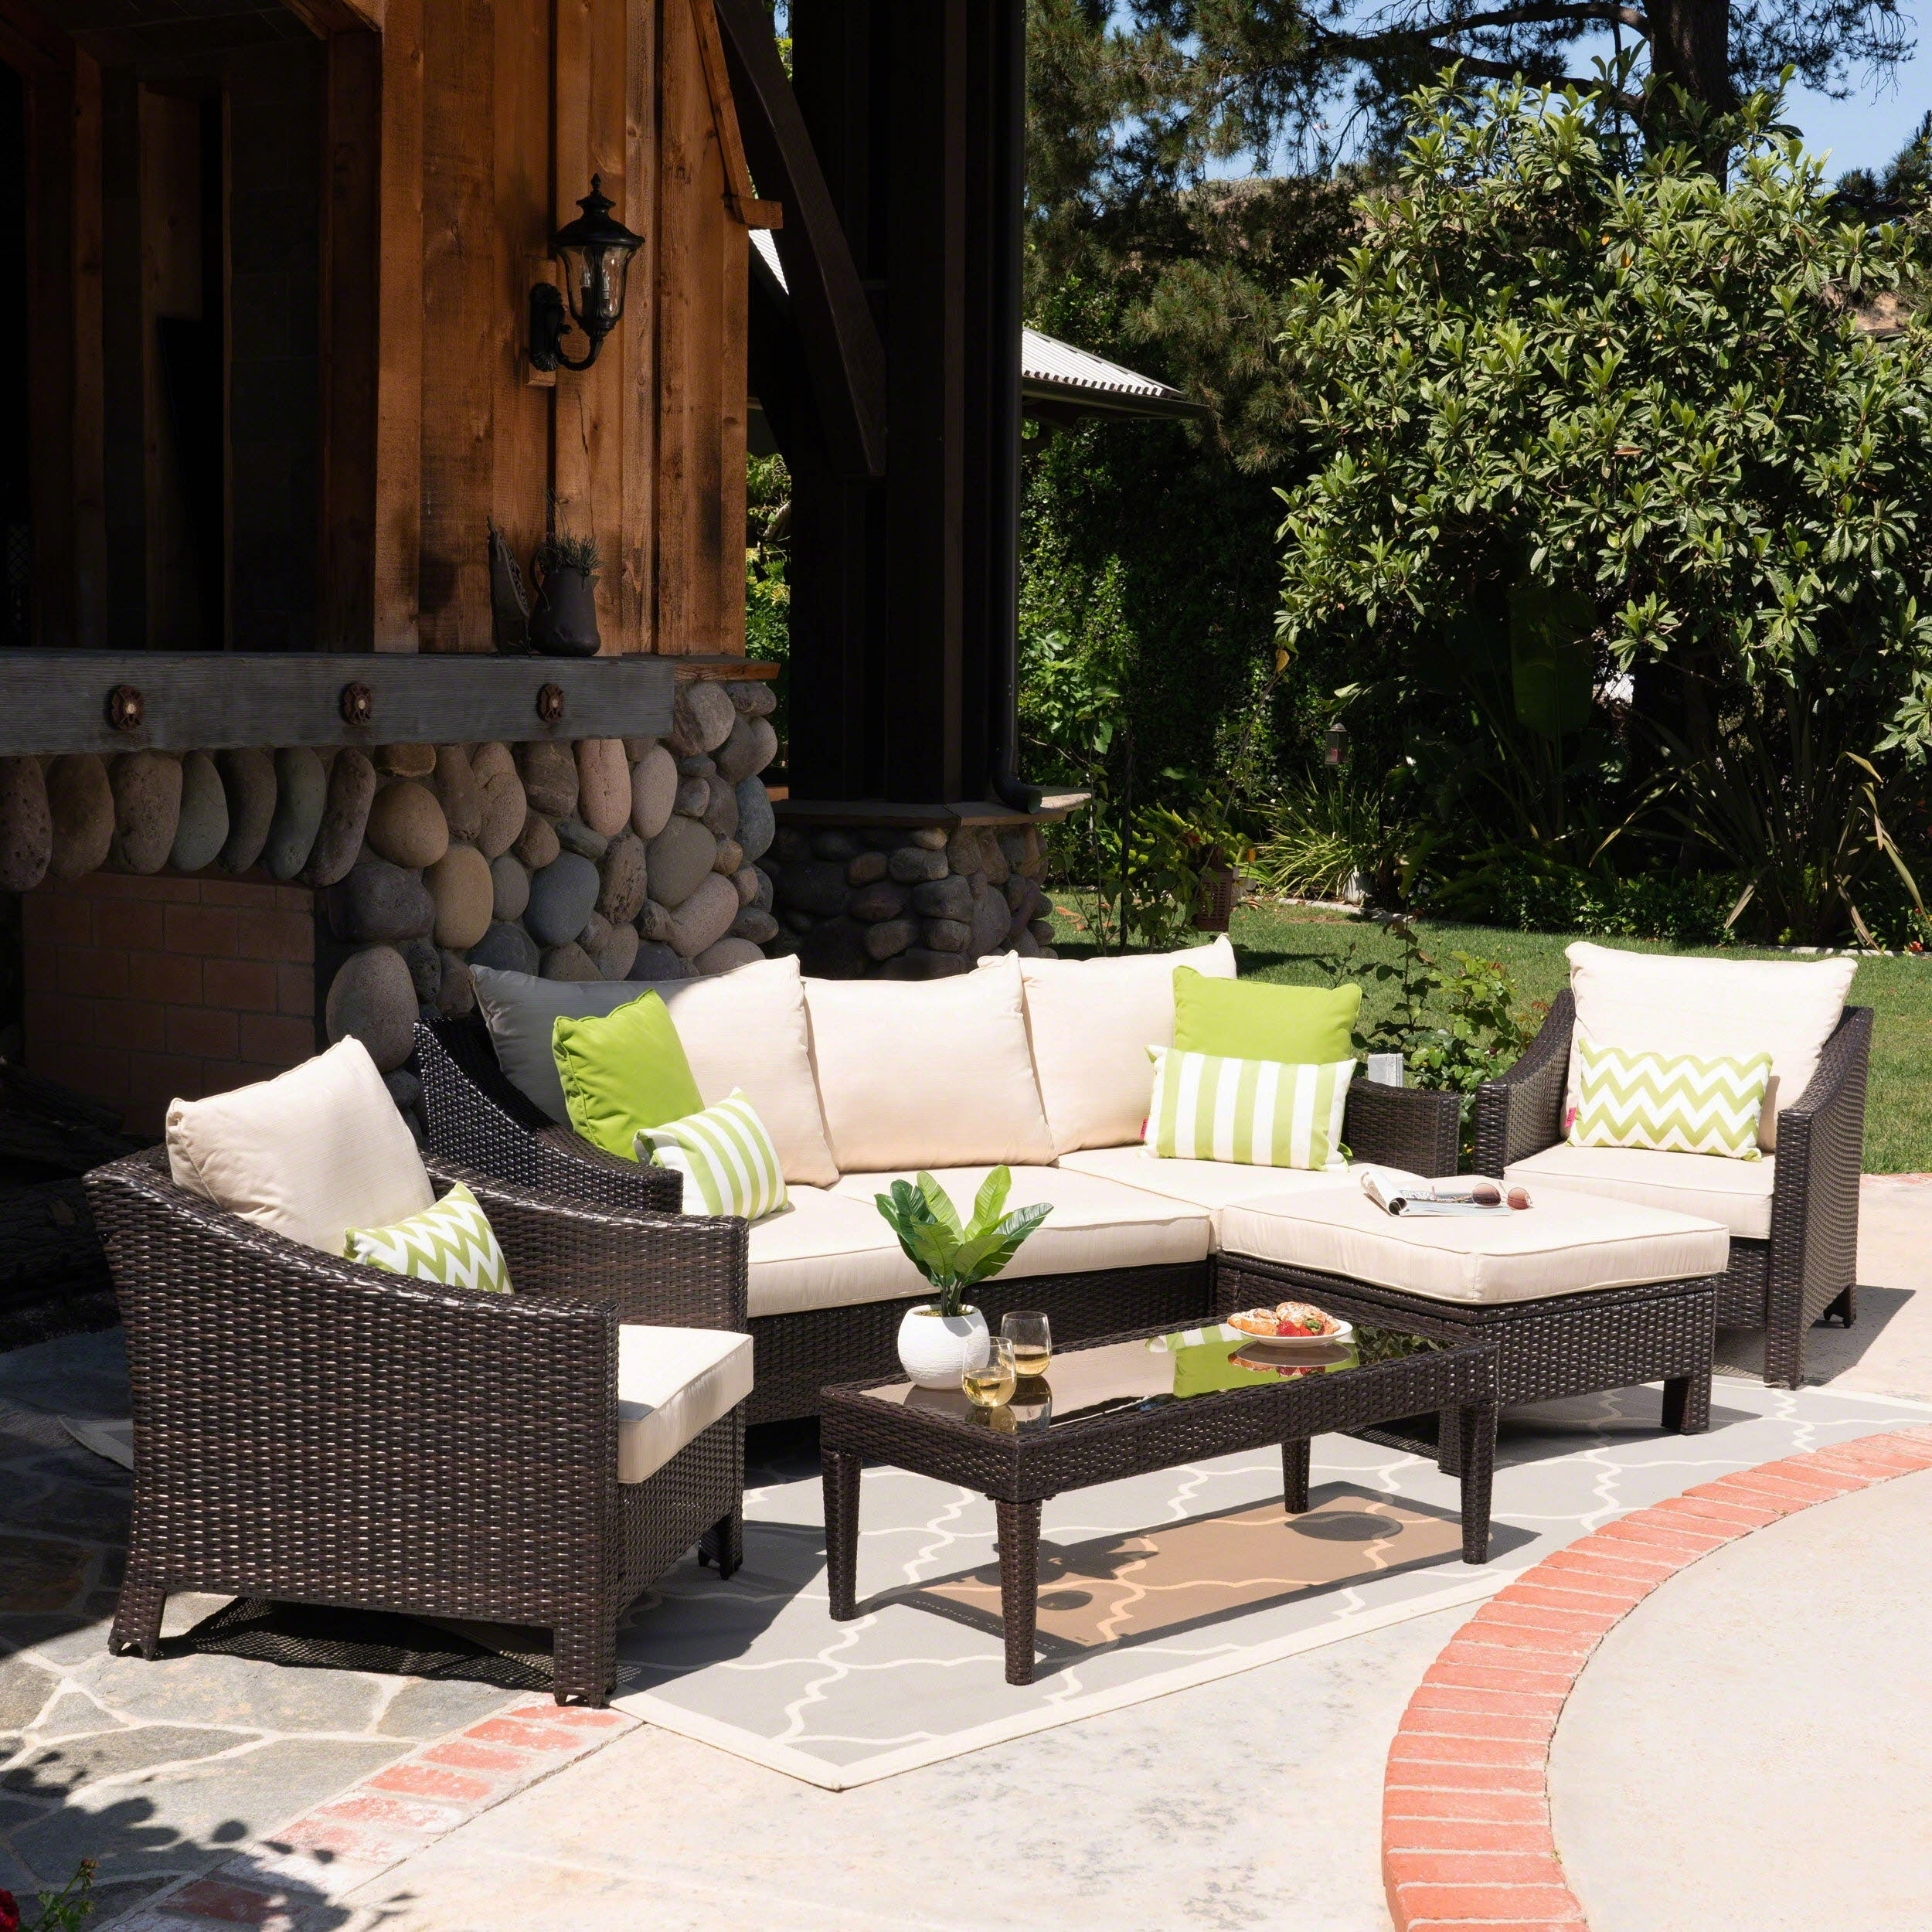 Charmant Shop Antibes Outdoor 5 Seater L Shaped Sofa Set With Cushions By  Christopher Knight Home   Free Shipping Today   Overstock.com   22047876